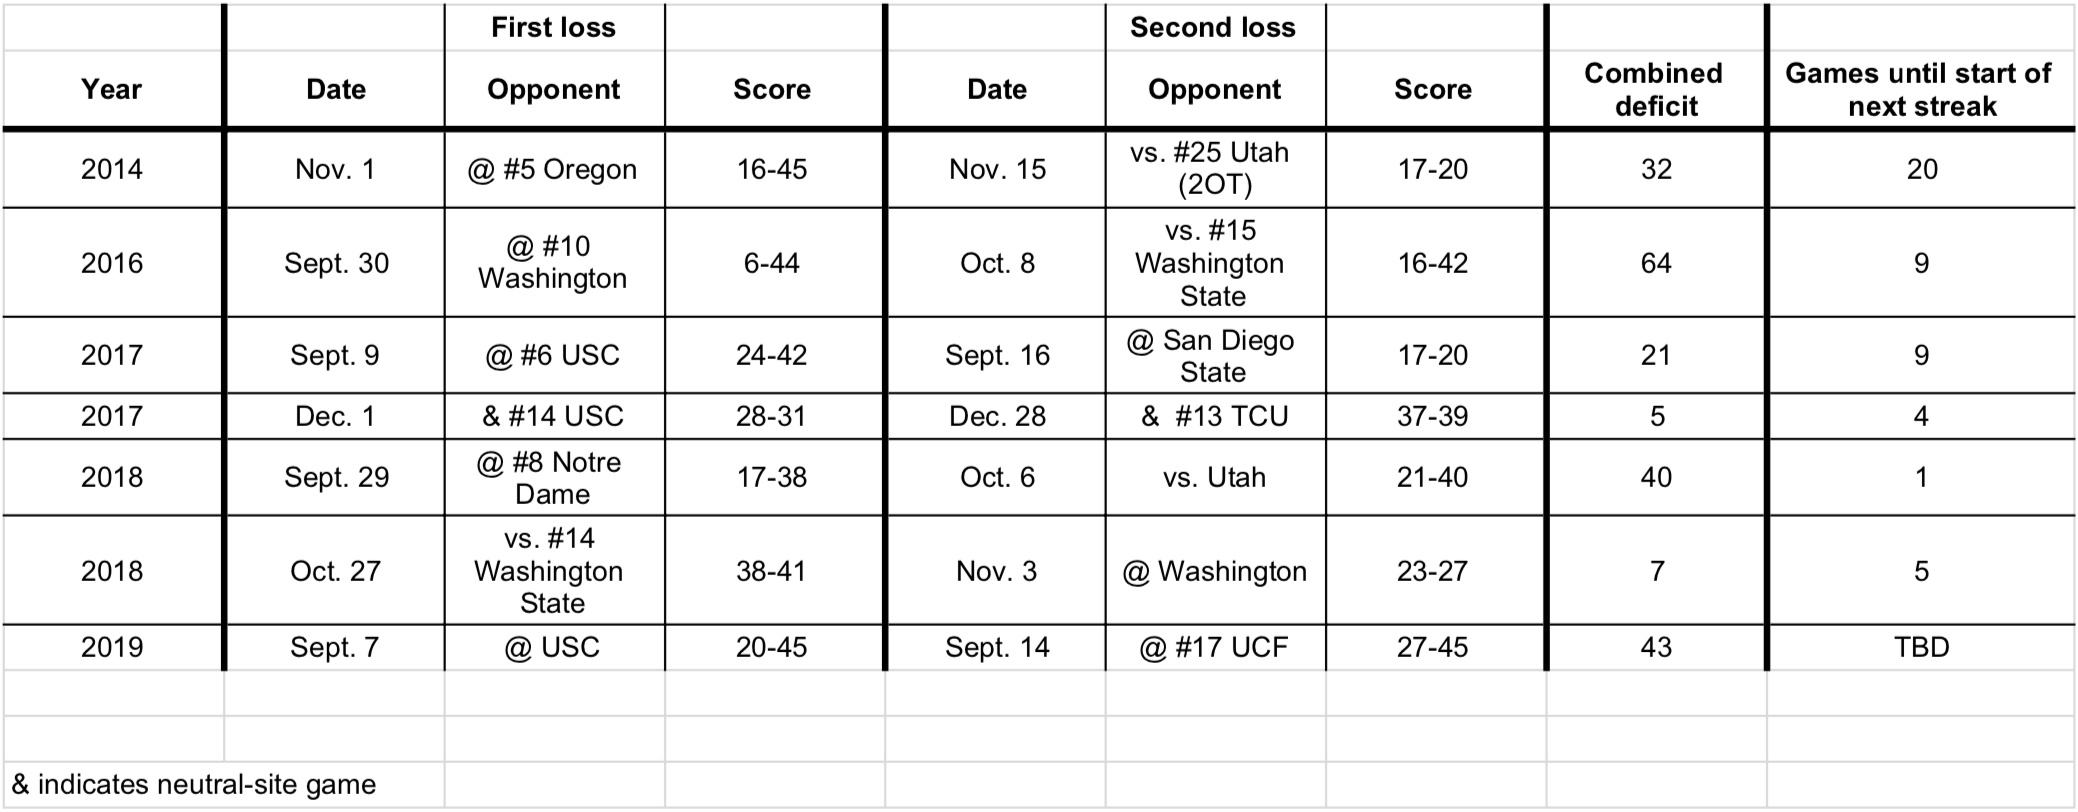 Stanford football losing streaks under David Shaw, 2014 onward